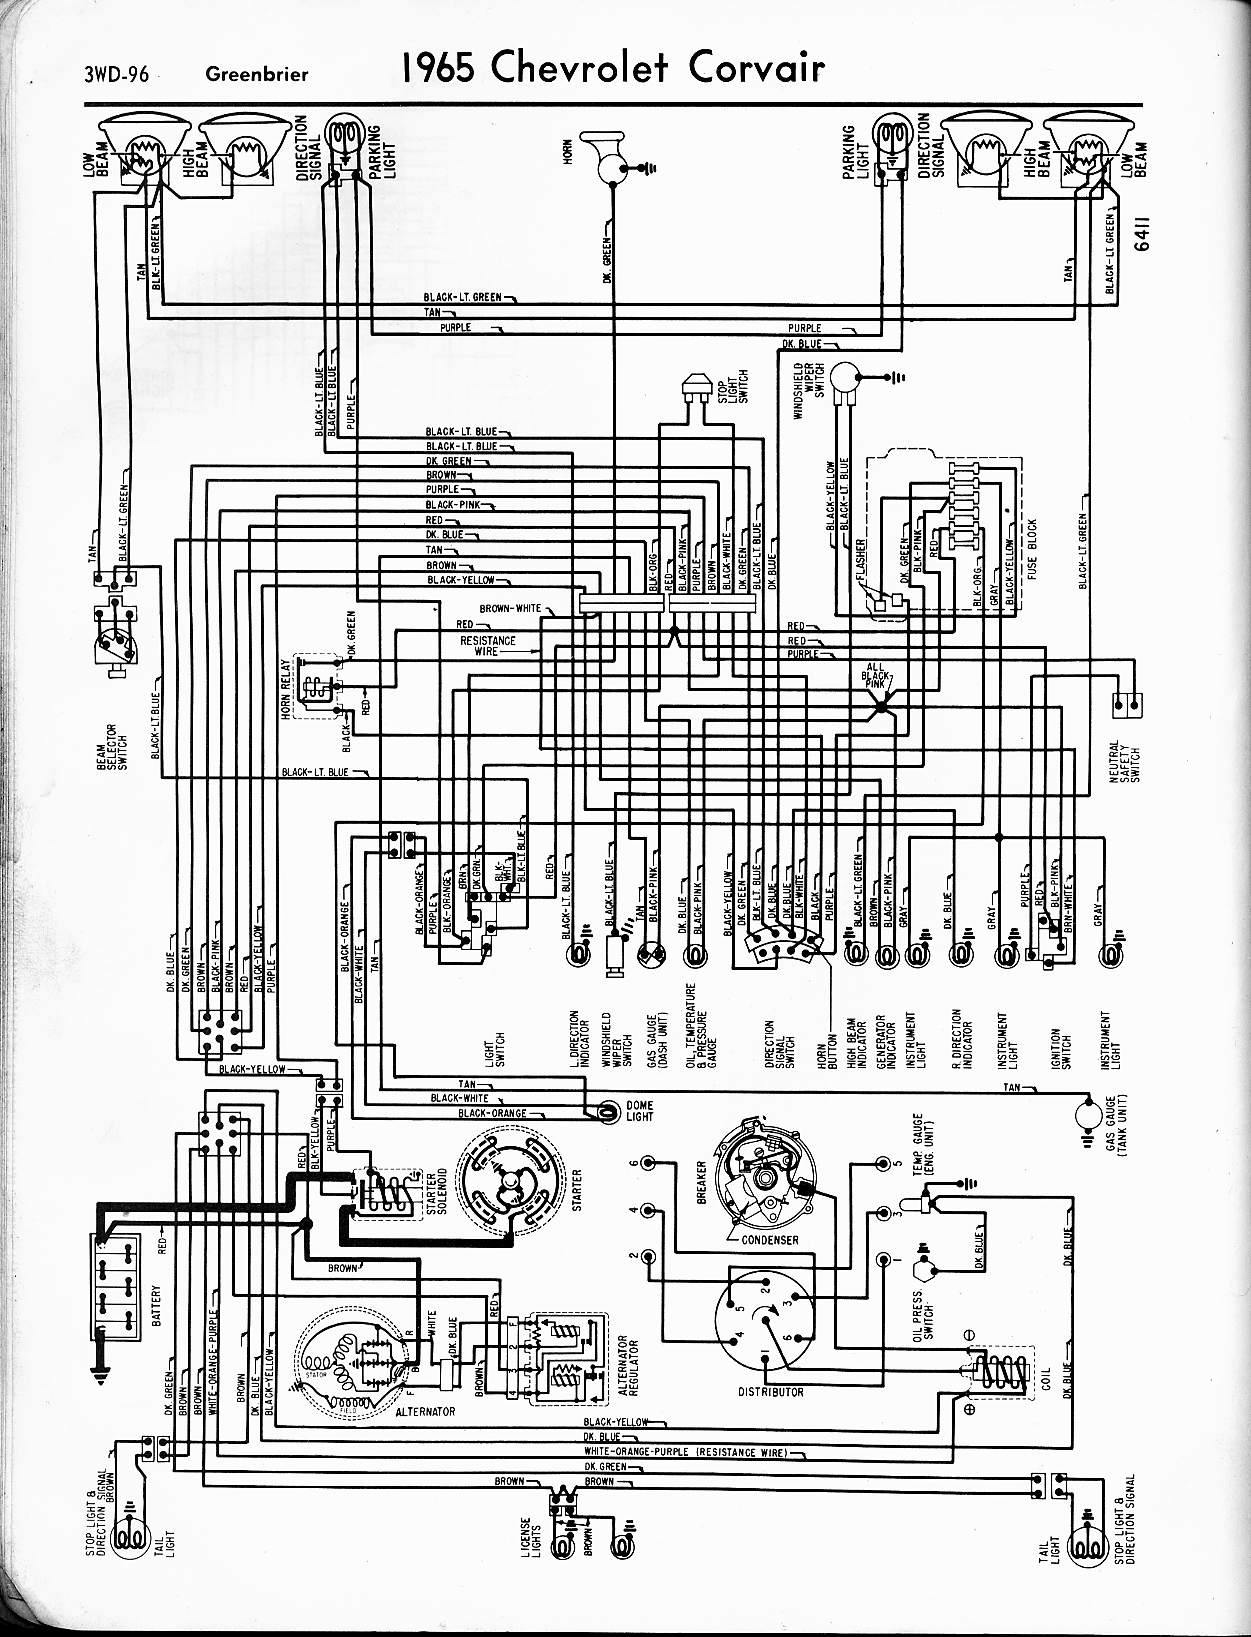 MWireChev65_3WD 096 57 65 chevy wiring diagrams 1965 corvair wiring diagram at soozxer.org